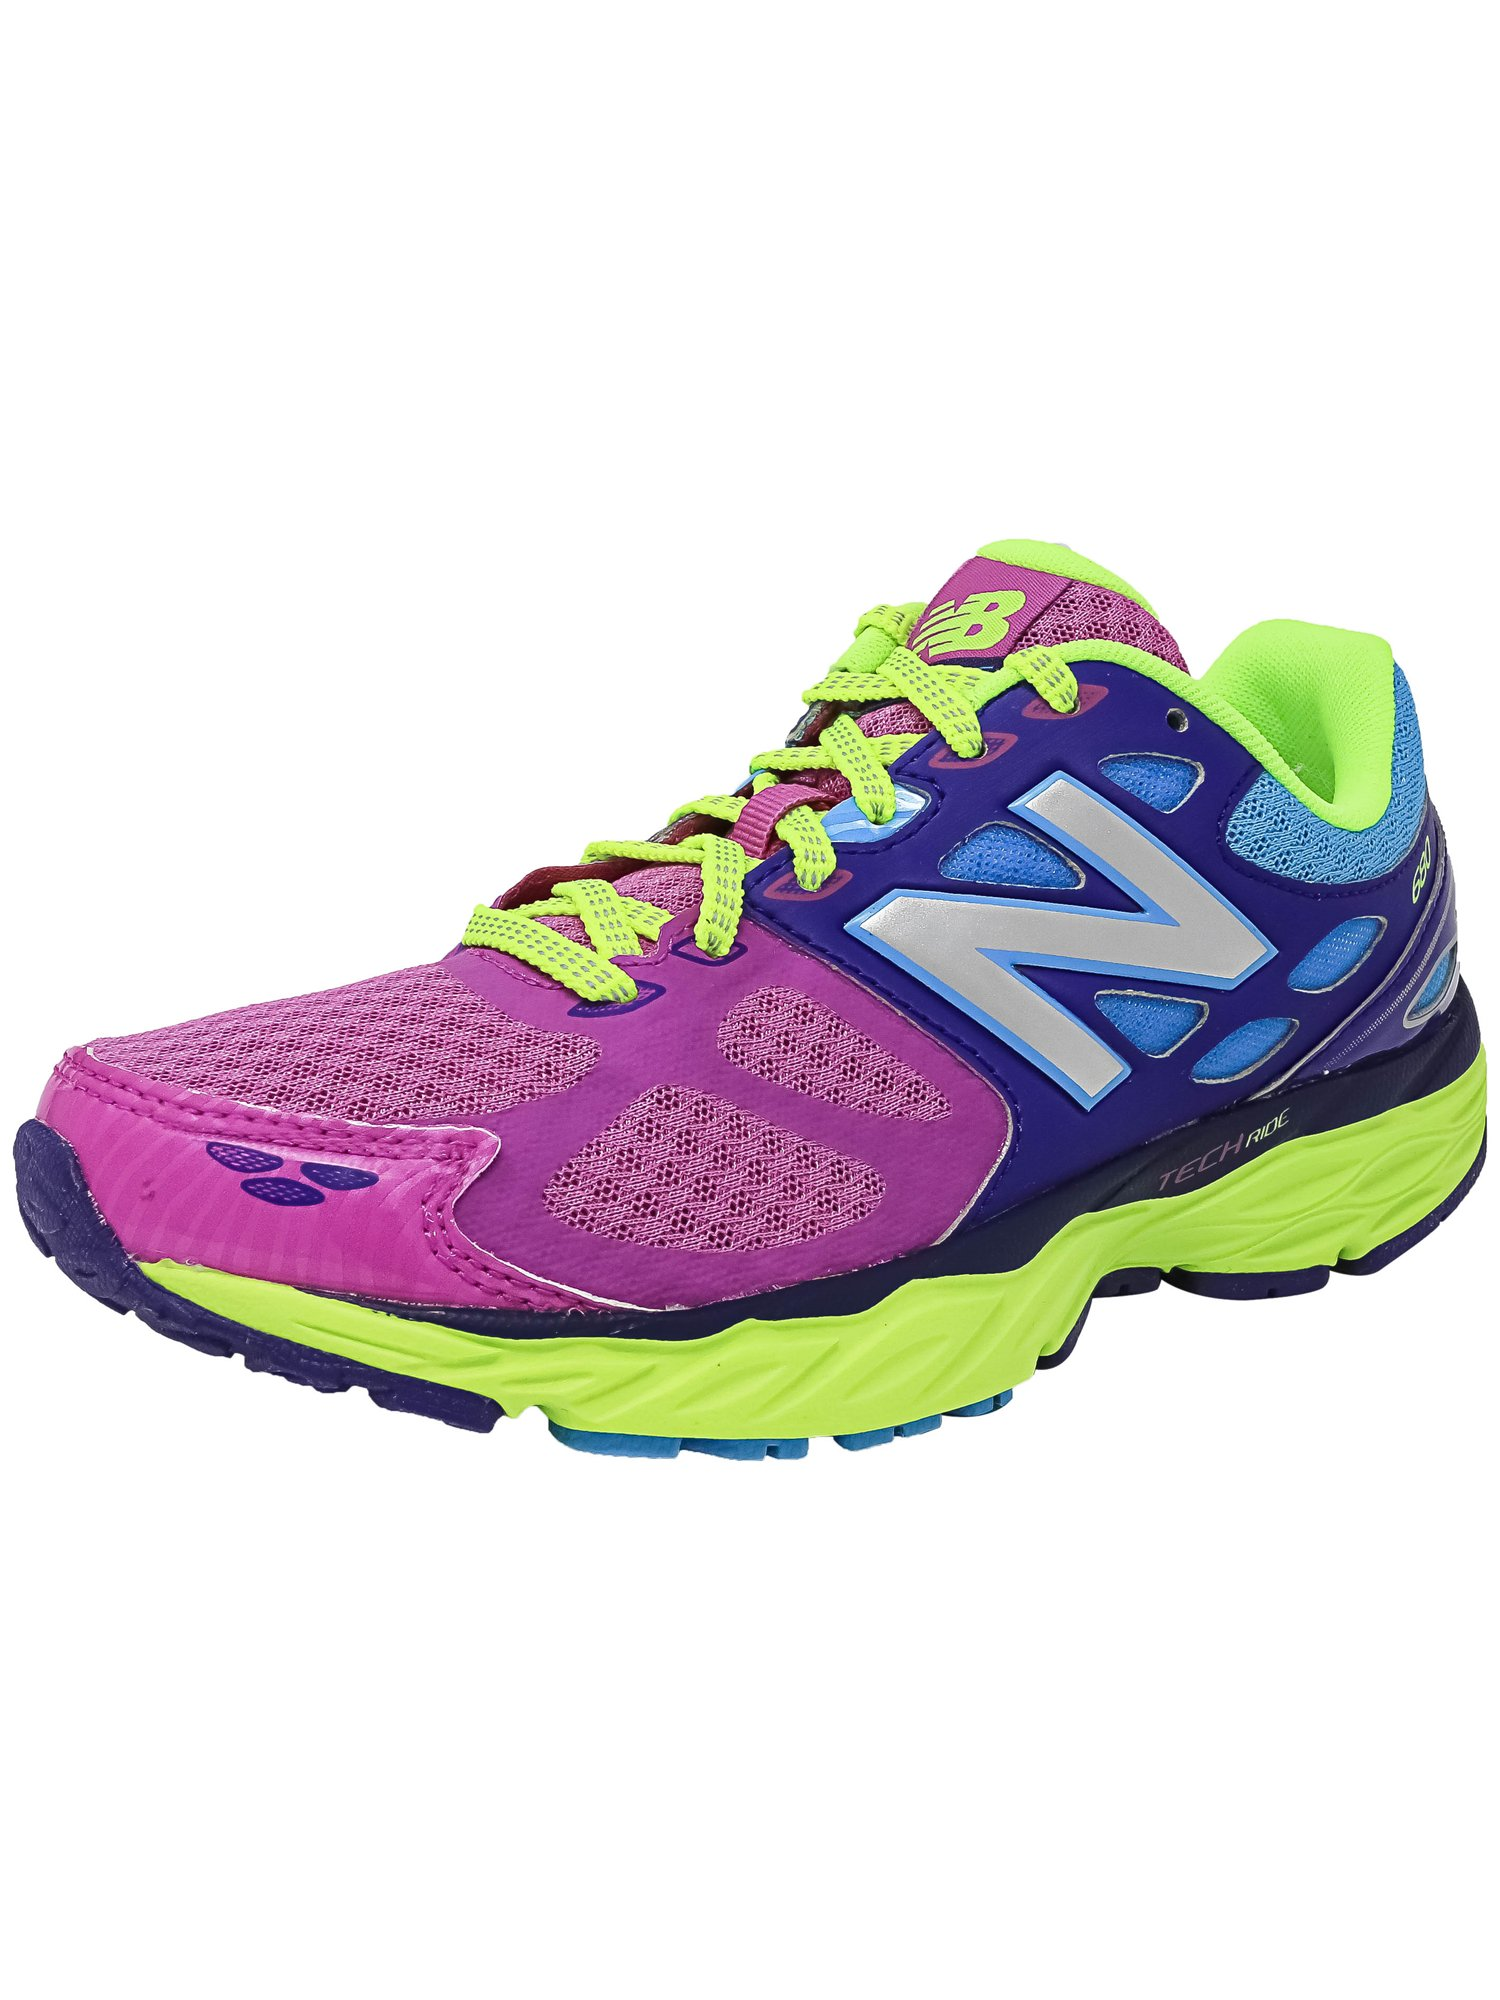 New Balance Women's W680 Lc3 Ankle-High Running Shoe - 6M